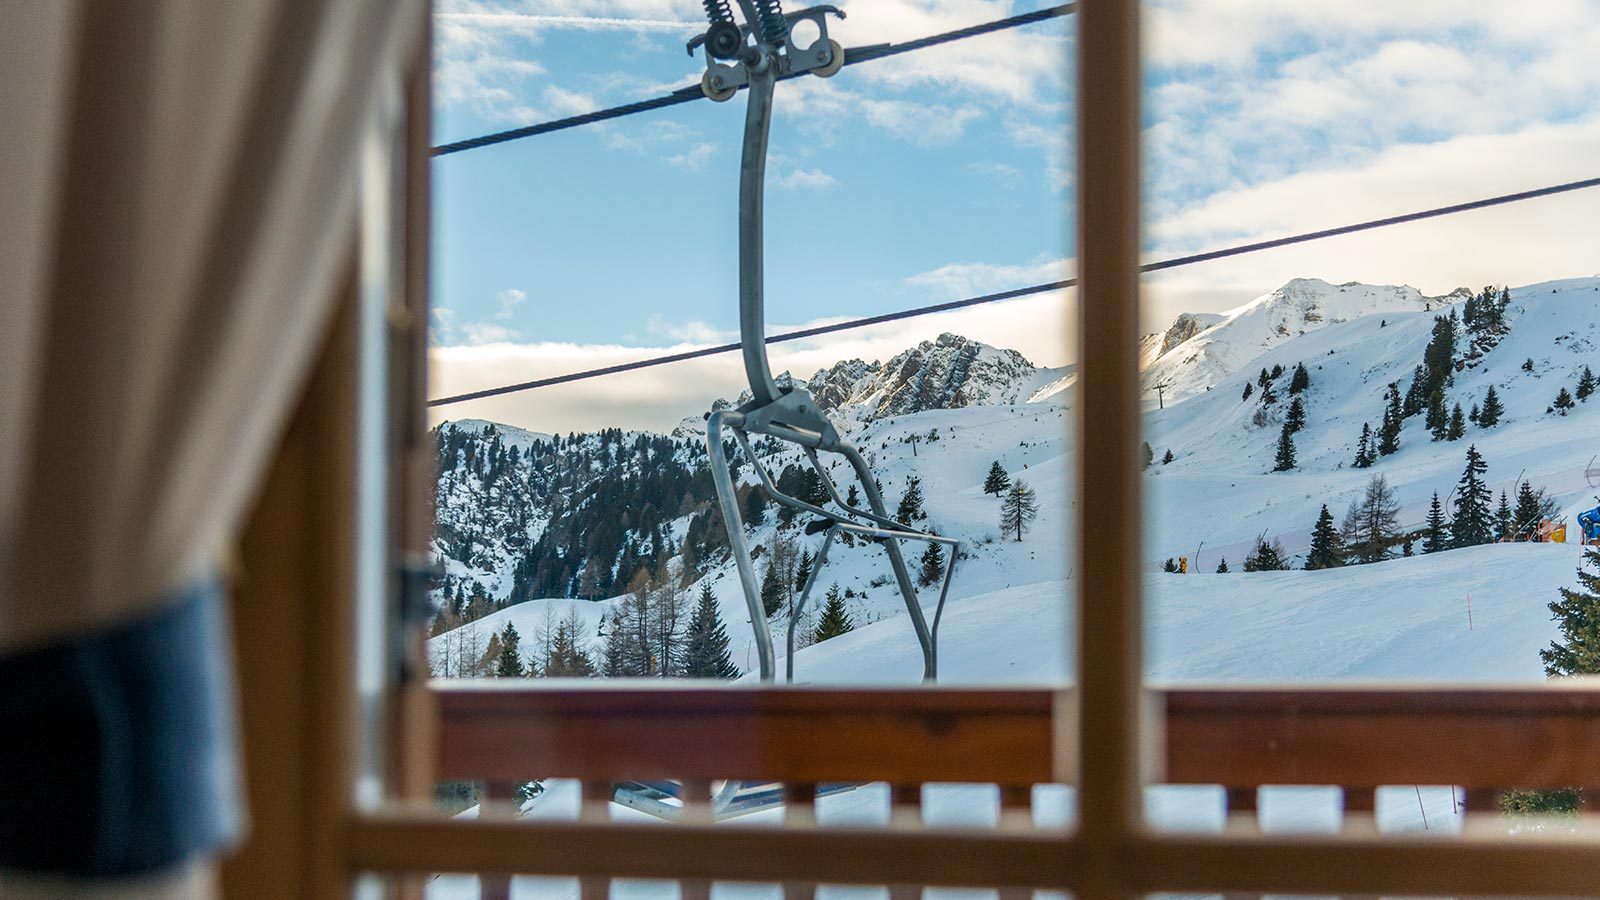 A view of the ski resort at San Pellegrino Pass through one of the windows